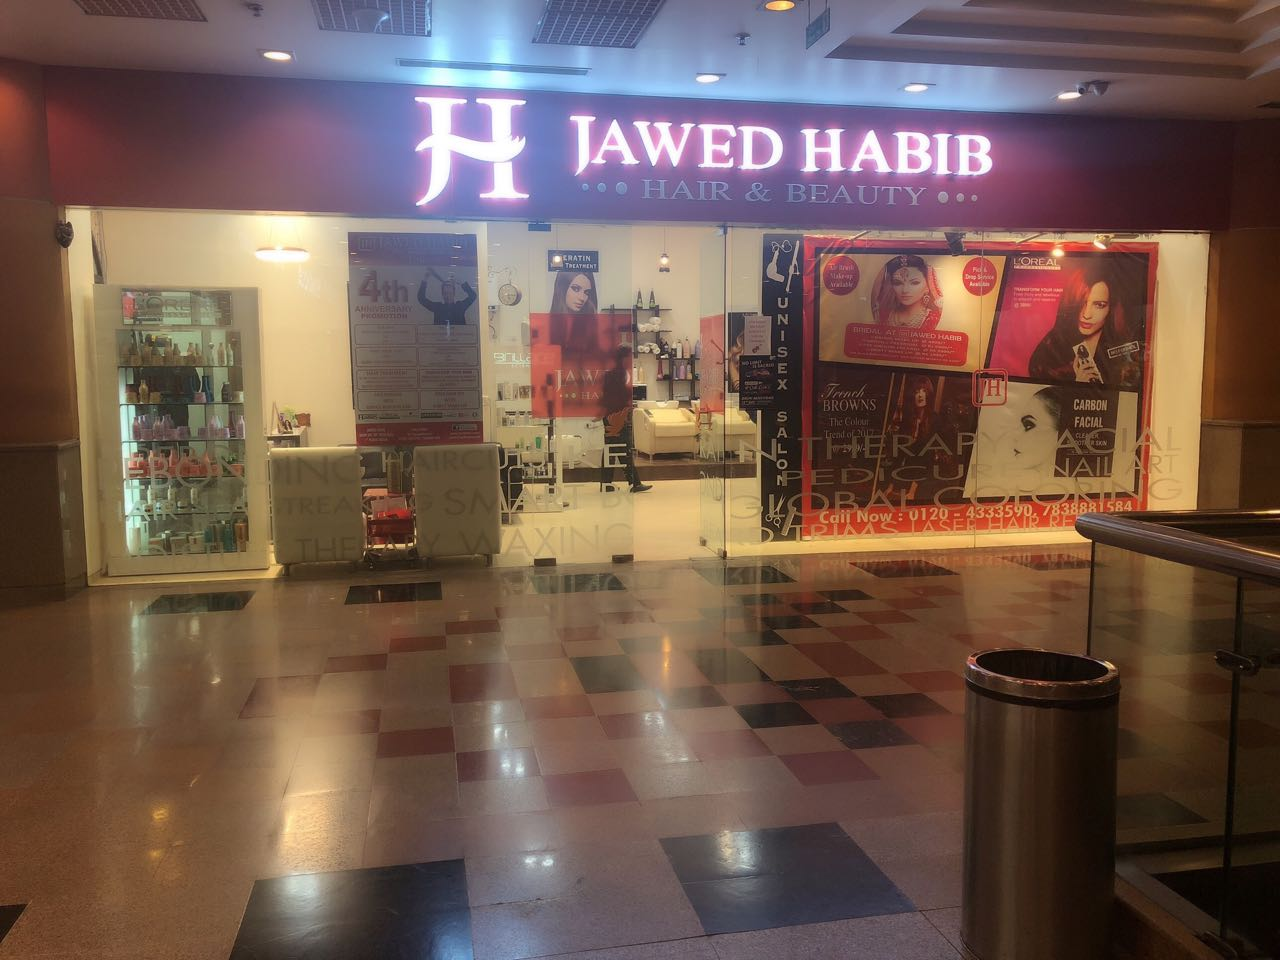 Jawed Habib Launched New Salon In Spice Mall Sector 25a Noida